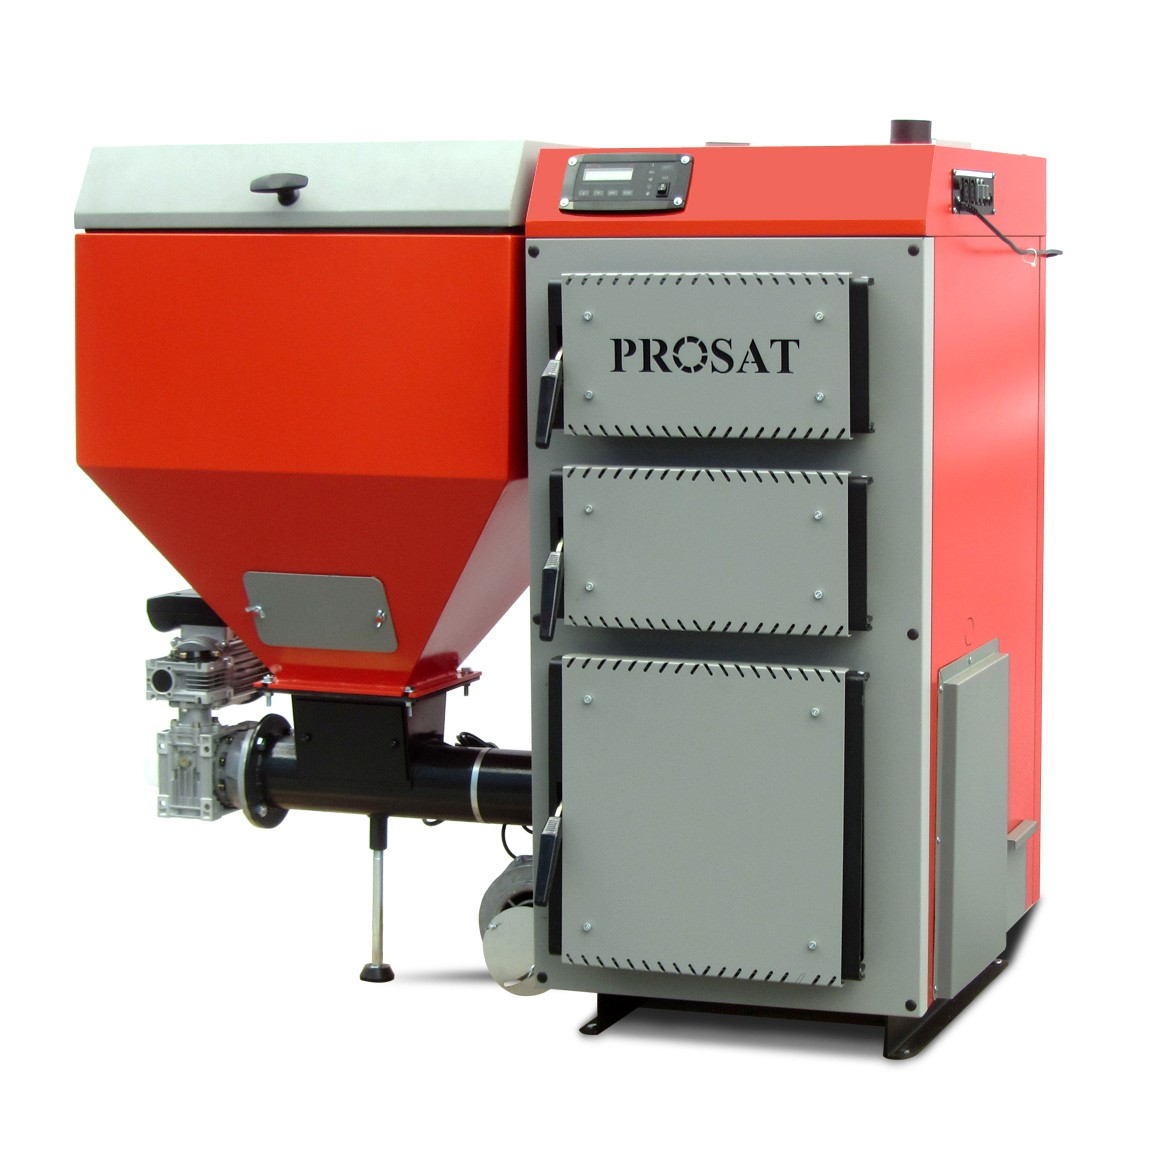 Boiler for coal 5-25mm PROSAT WE 5 class 15 kW